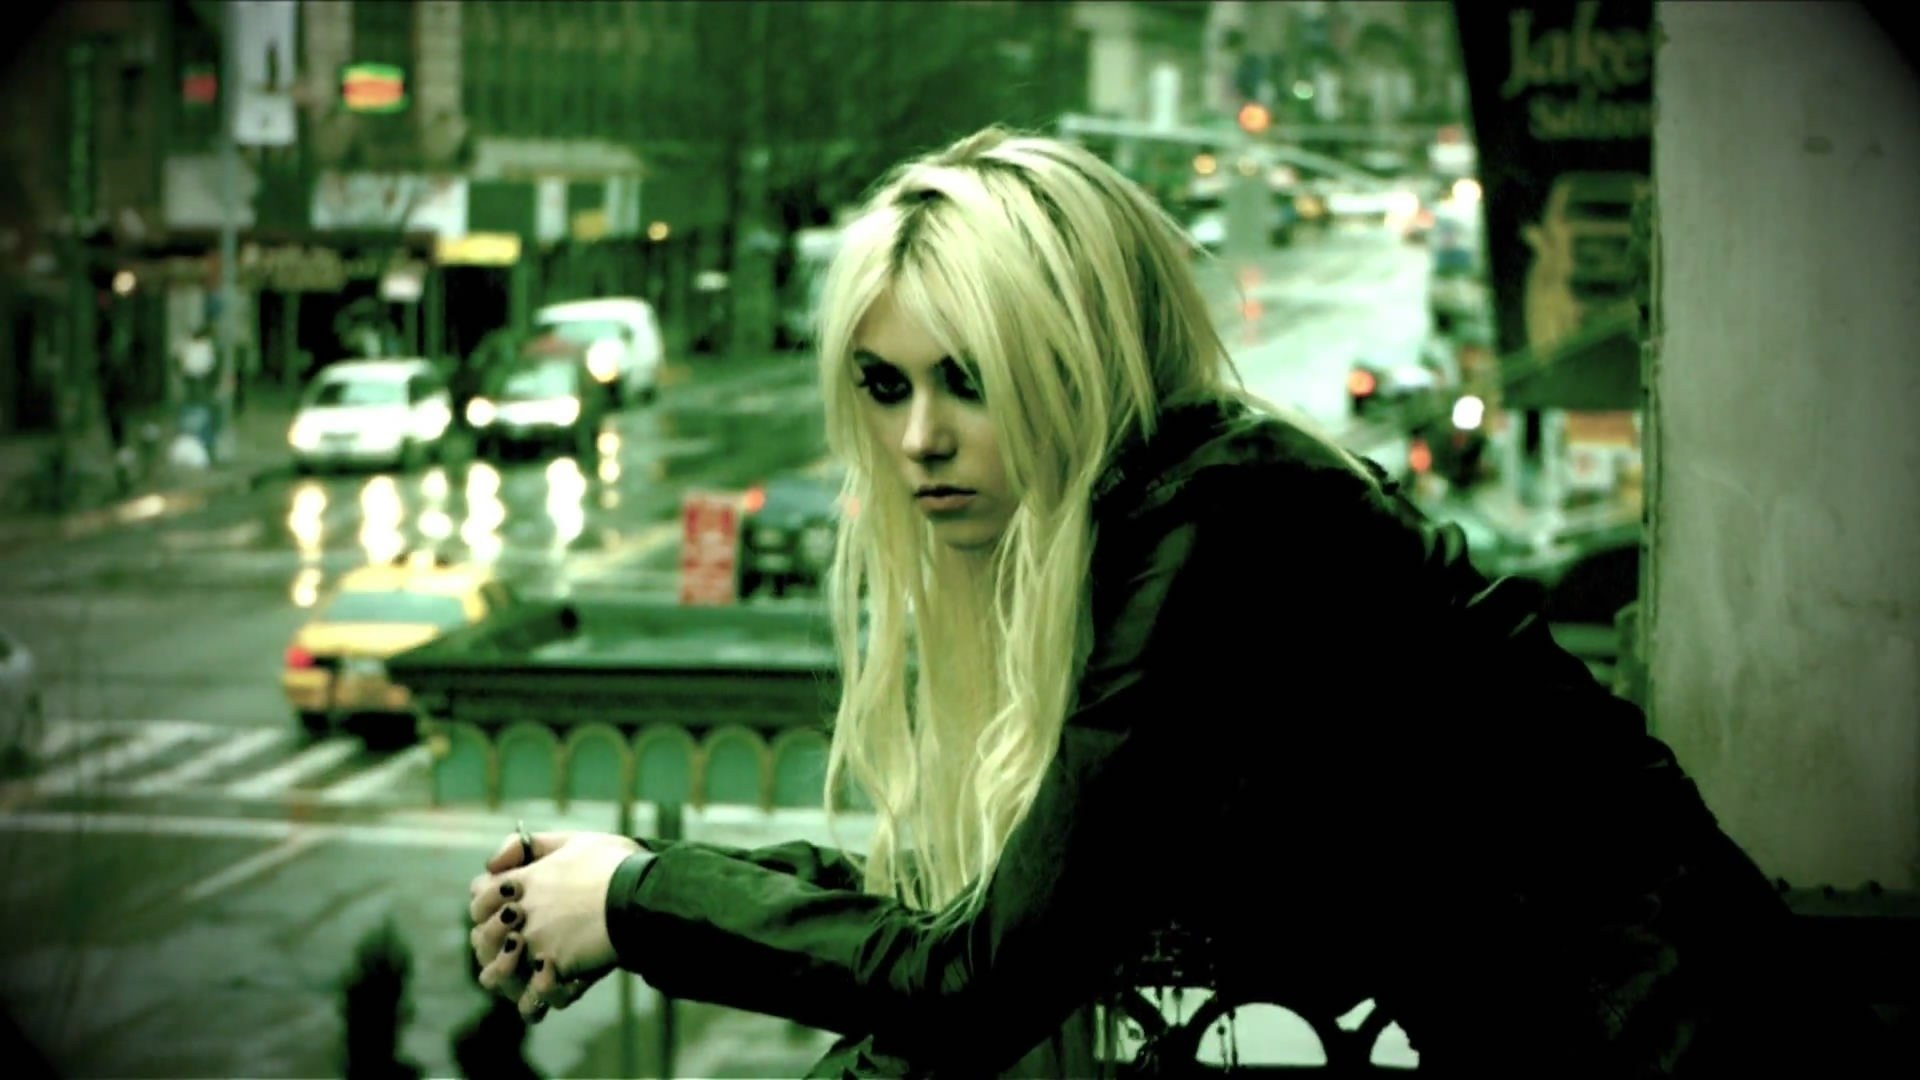 143 Taylor Momsen Hd Wallpapers Background Images Wallpaper Abyss